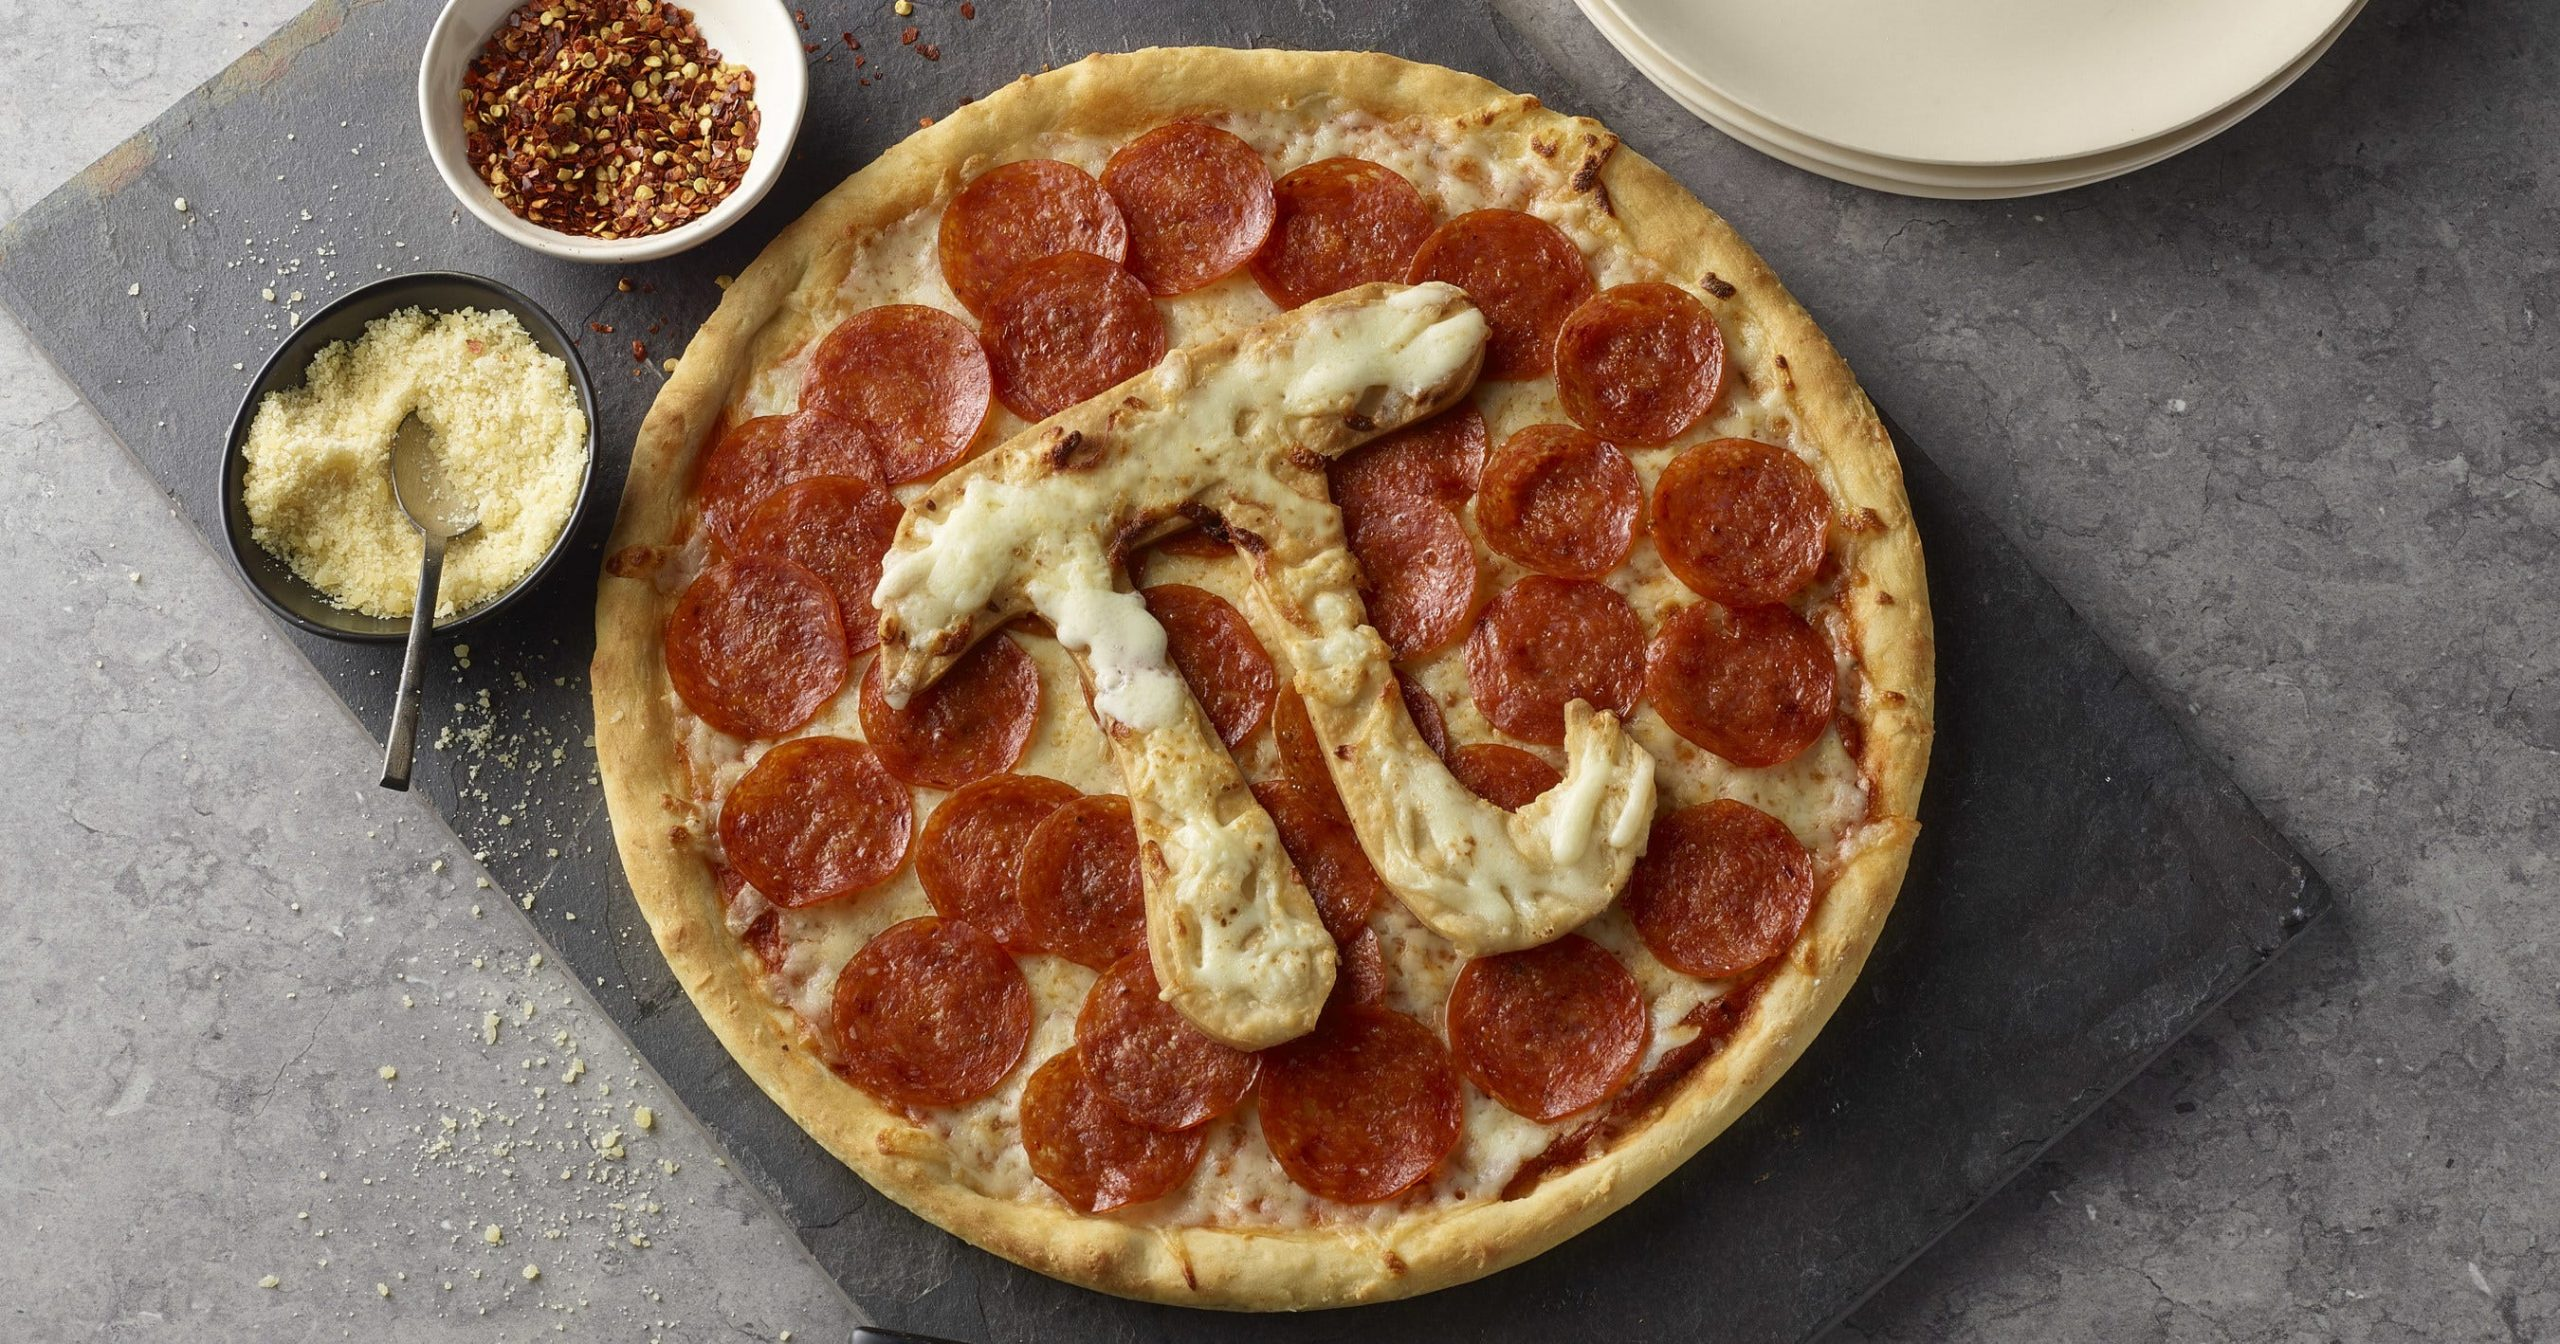 Pizza deals for Pi Day: Save Sunday plus earn free pizza with Domino's, Pizza Hut rewards programs